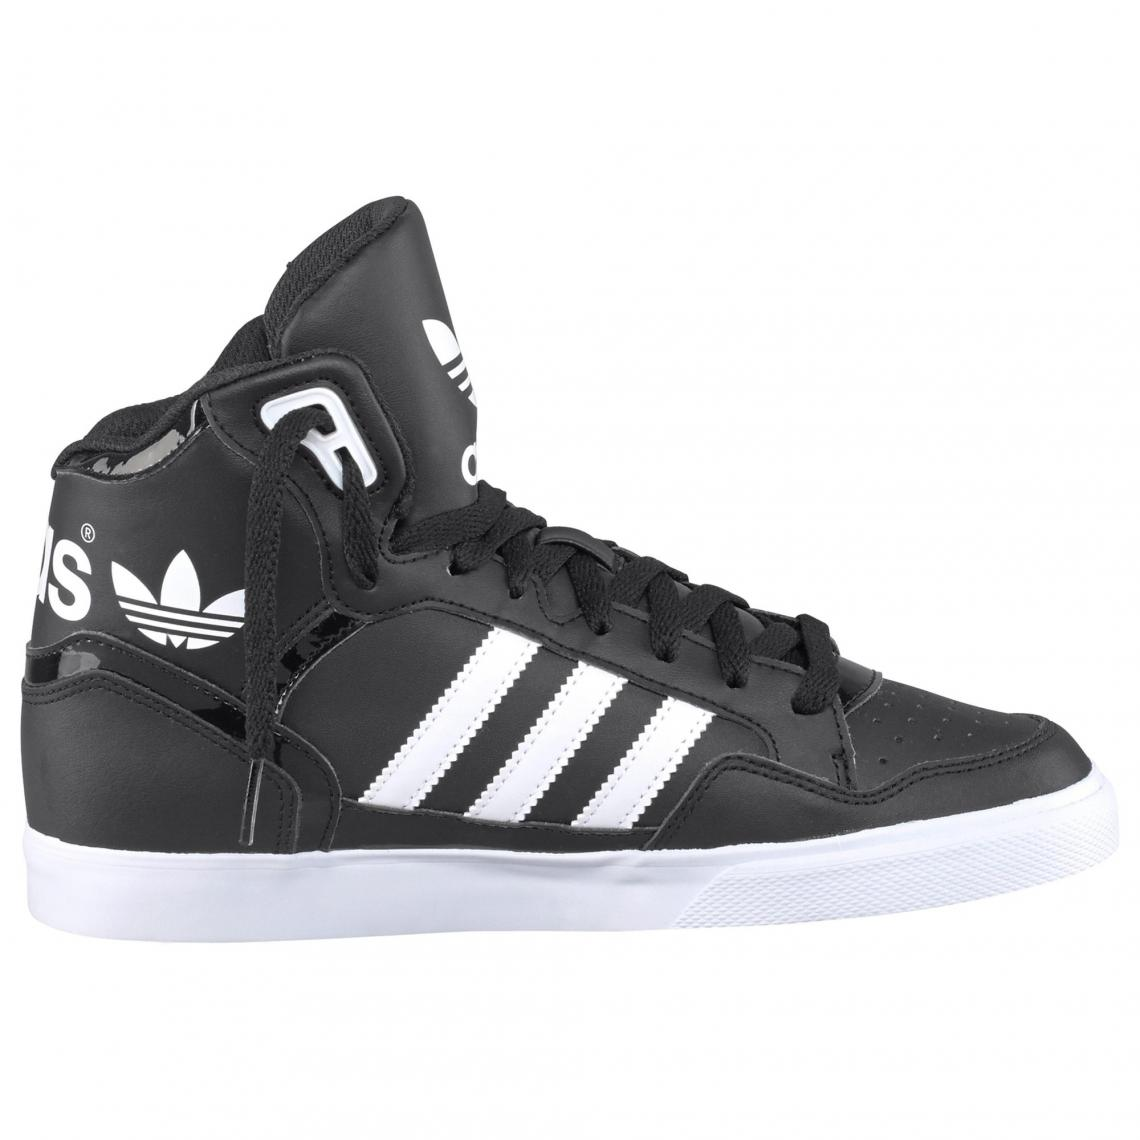 taille 40 f9a93 56f36 Baskets Femme Extaball W Adidas Originals - Noir | 3 SUISSES